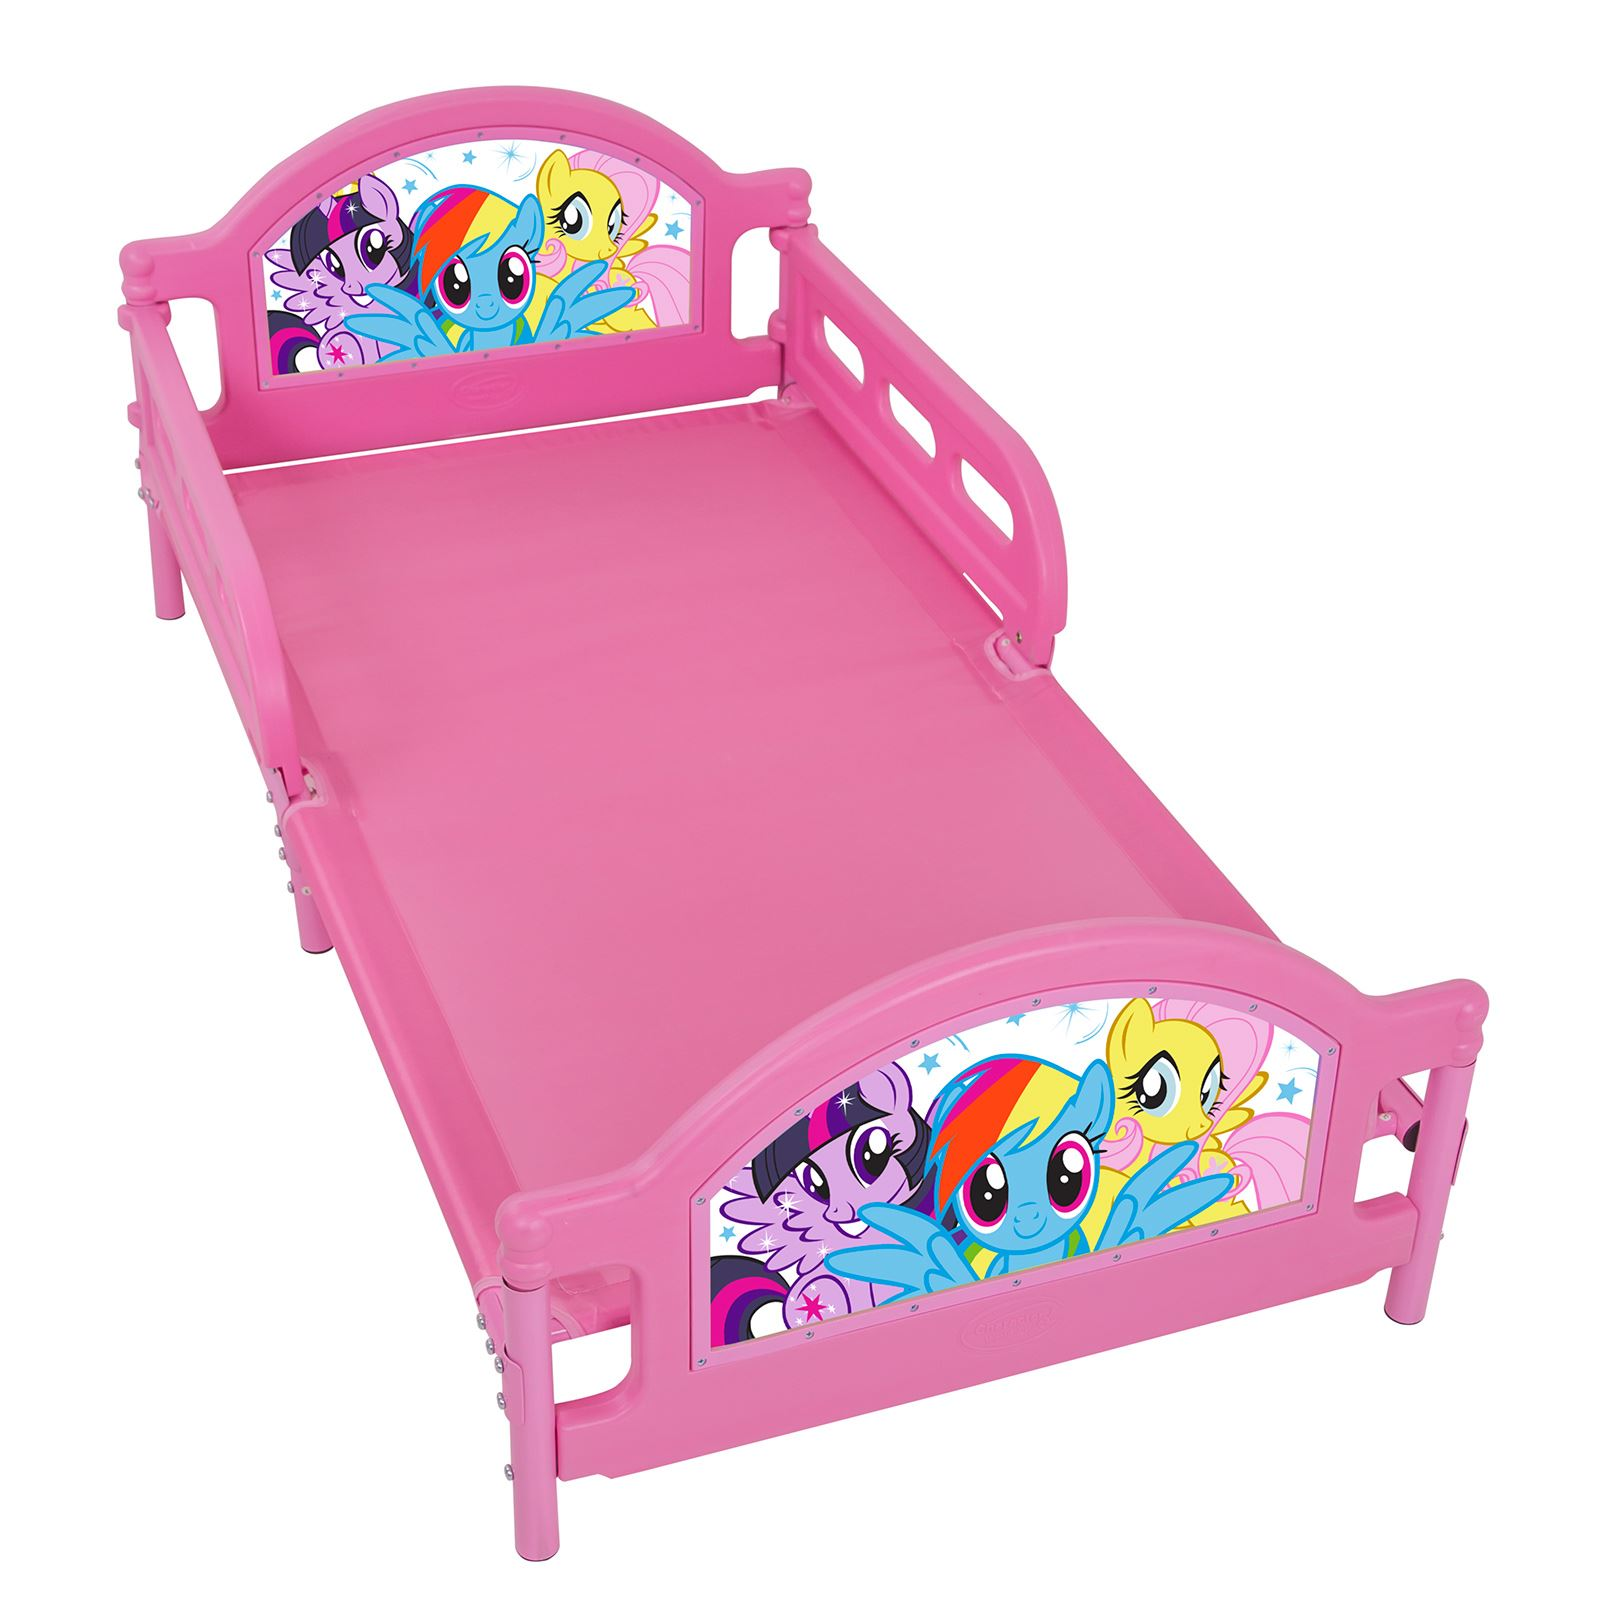 MY LITTLE PONY JUNIOR TODDLER BED MATTRESS NEW